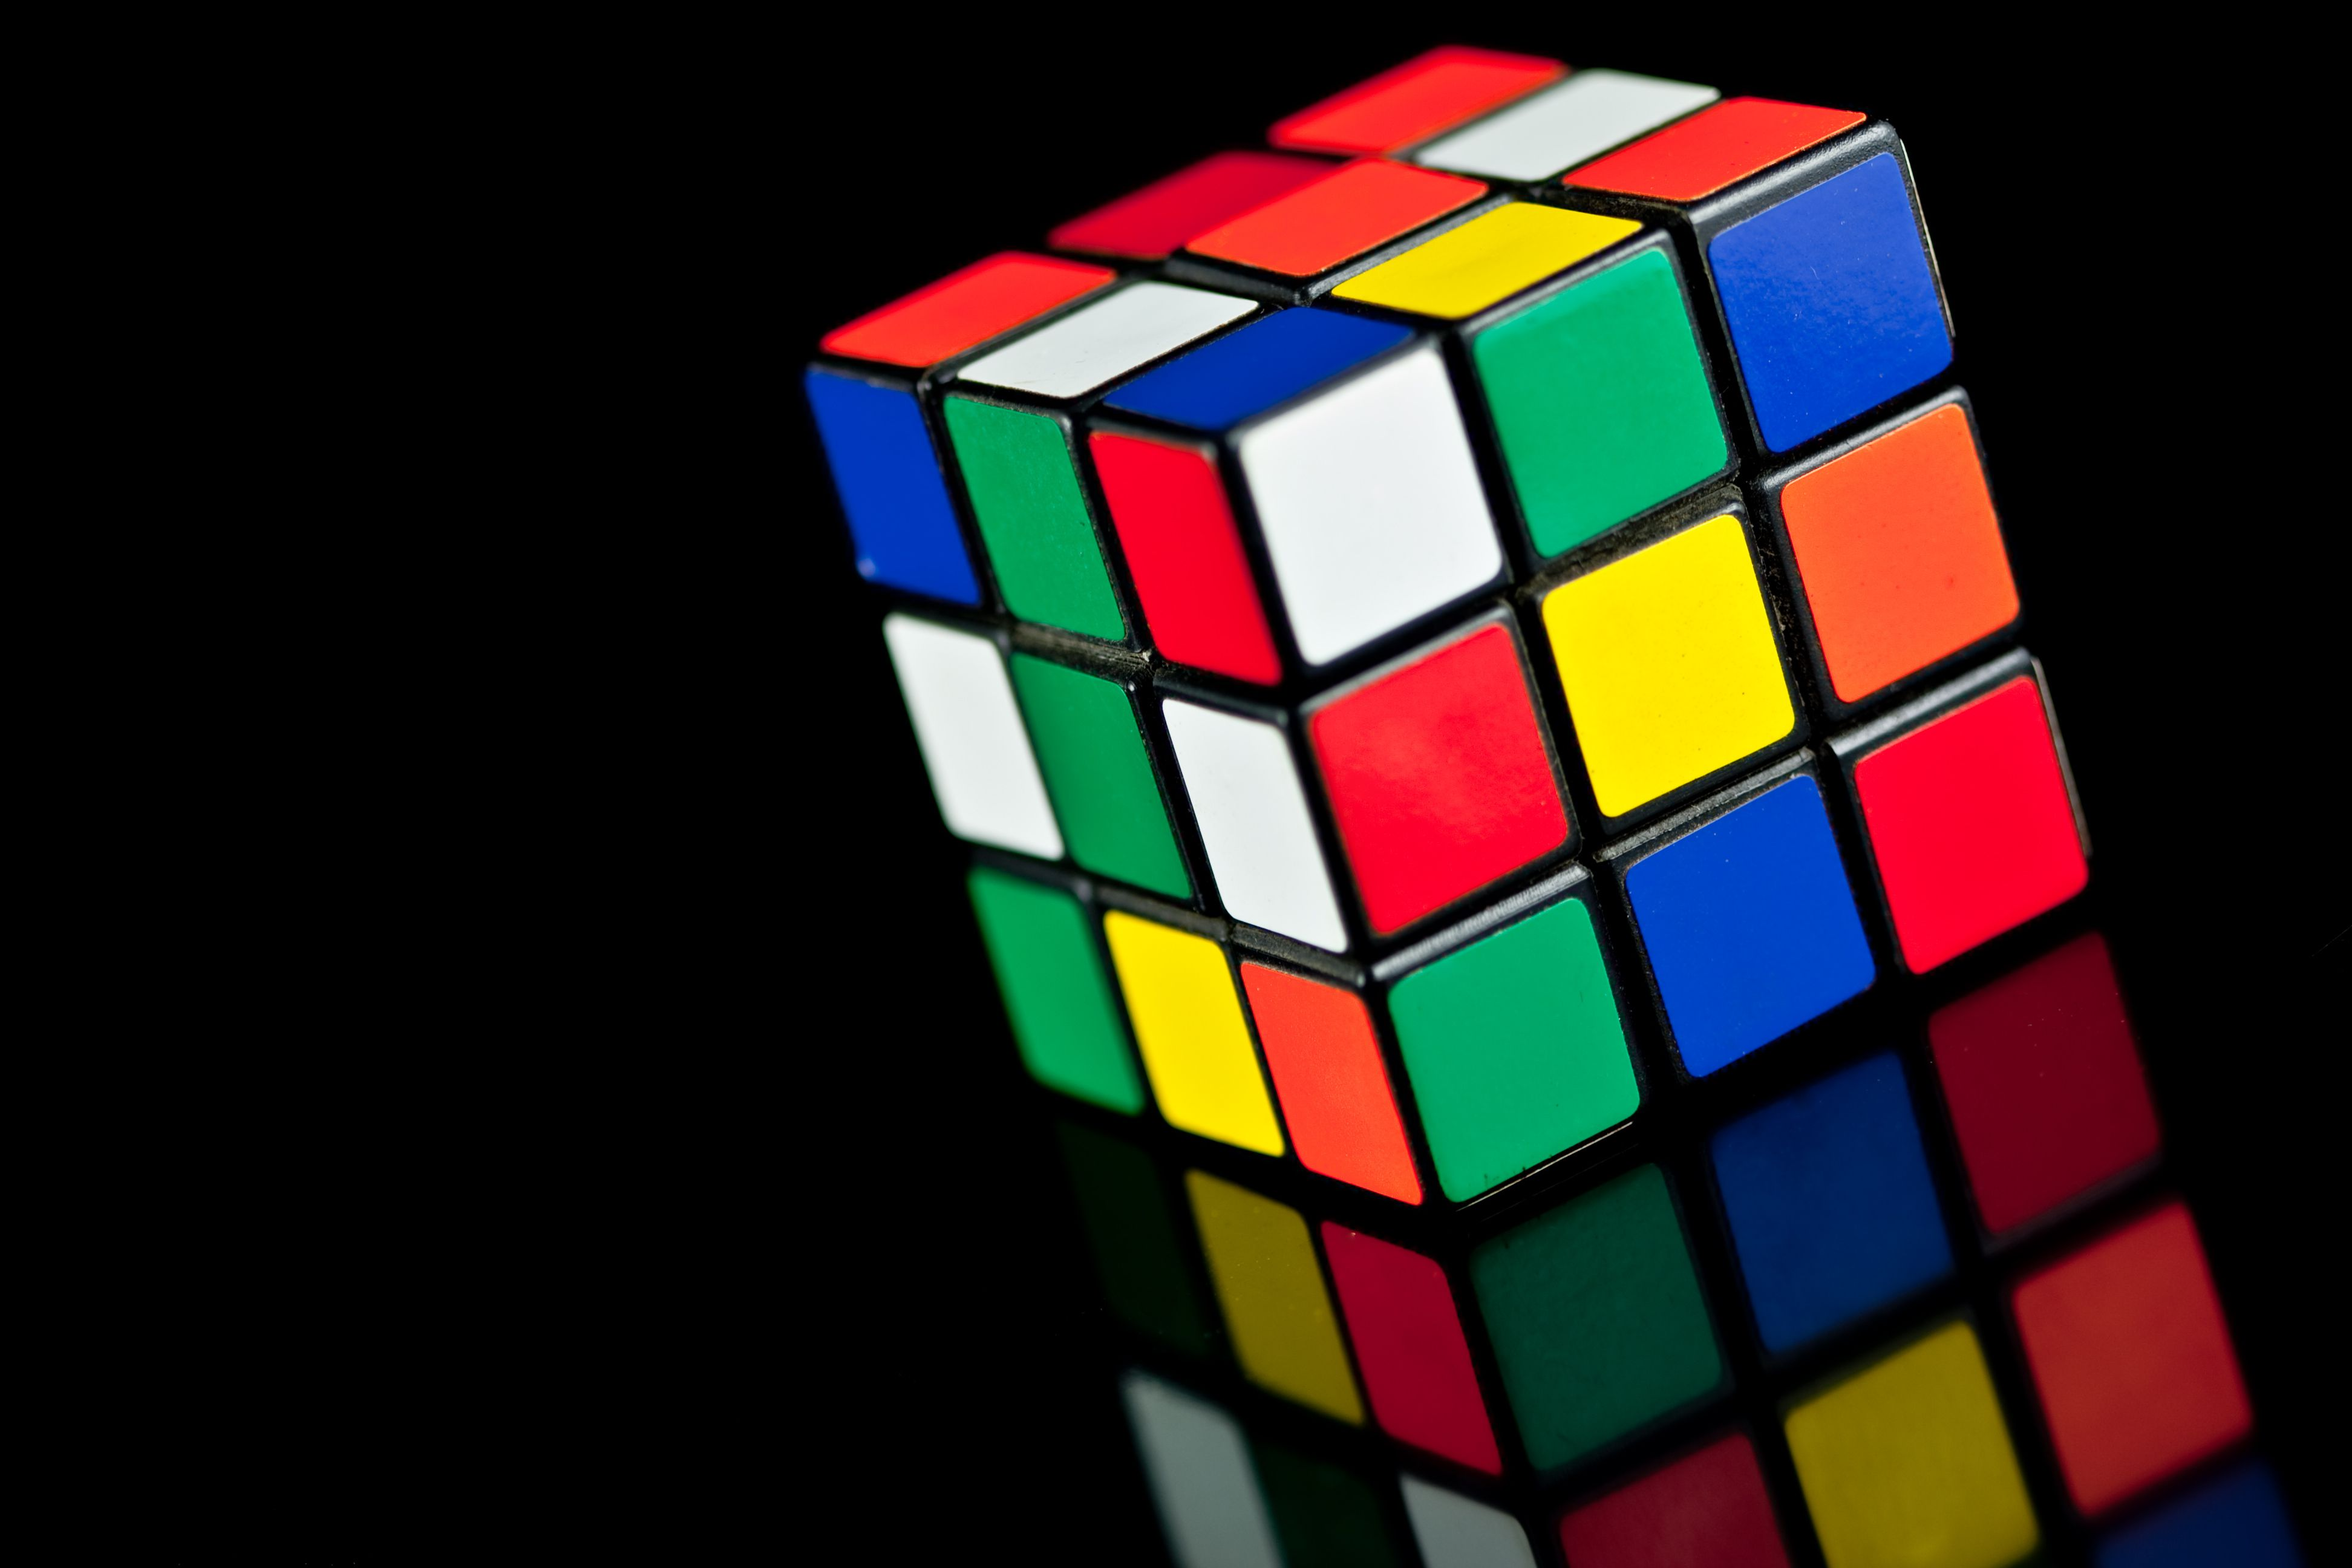 rubick cube essays The math behind solving the rubik's cube in this scientific american video essays on movement science, movement ecology, and the nature of movement.